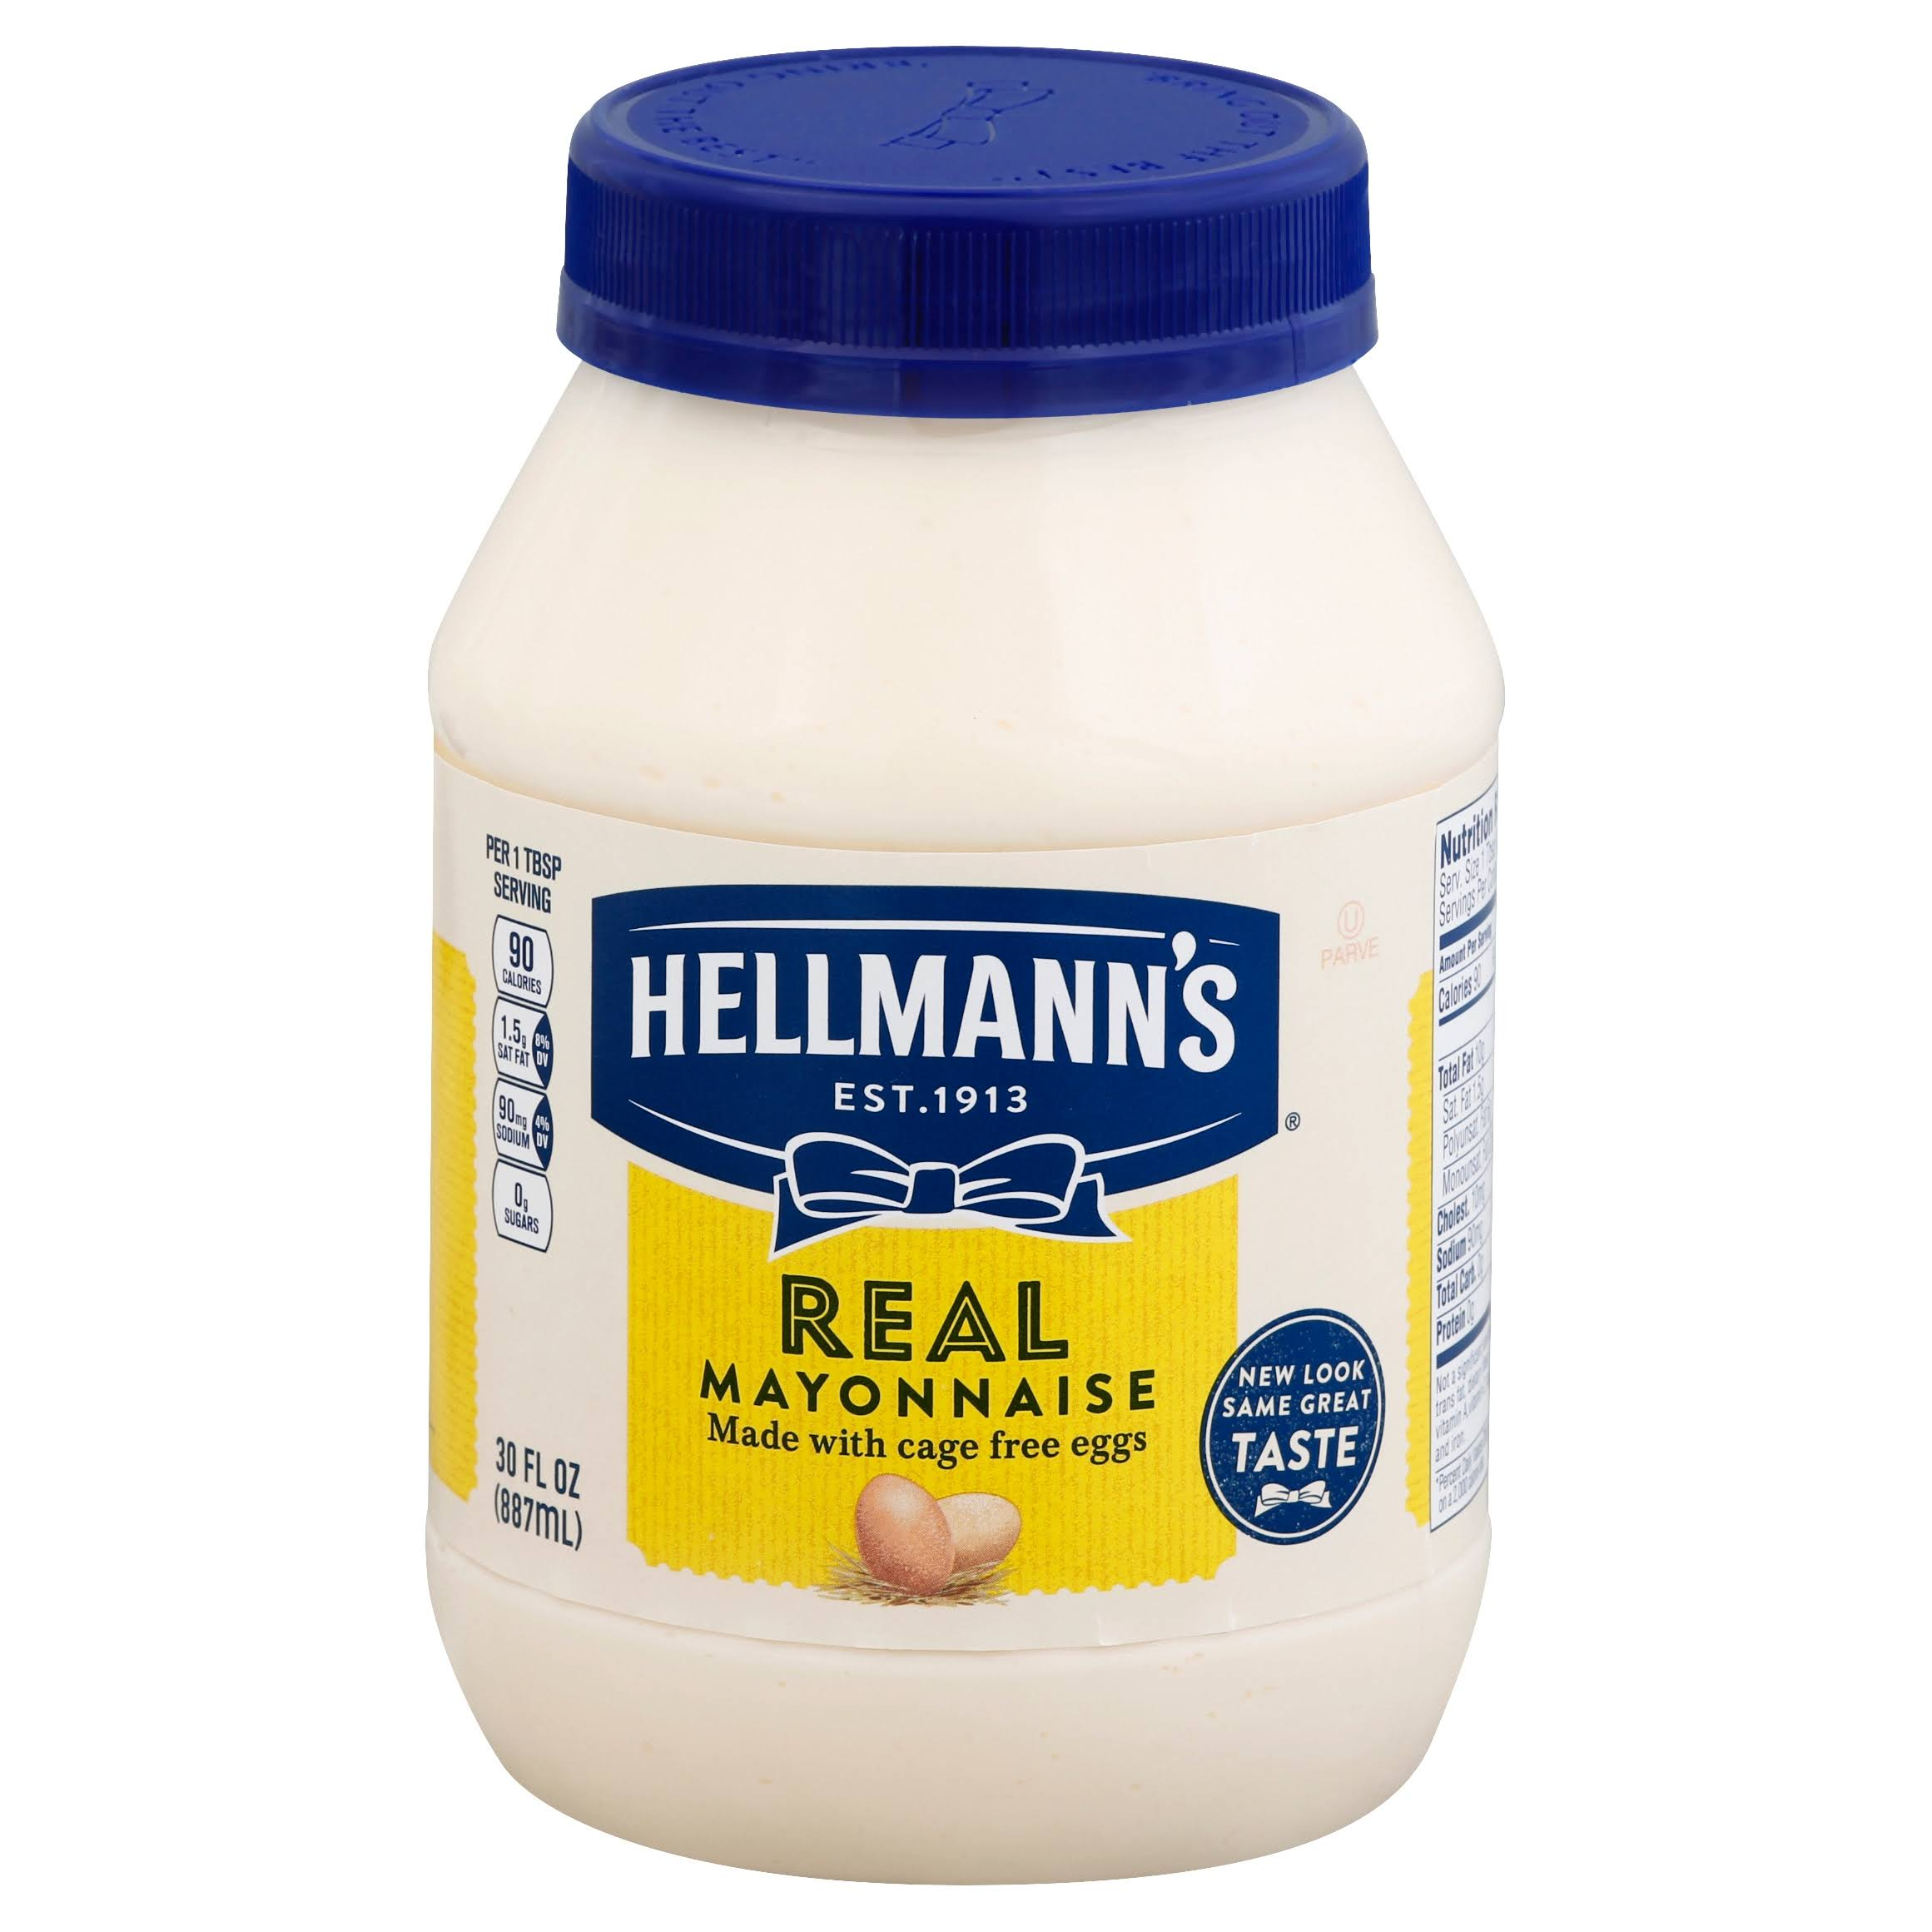 Hellmann's Real Mayonnaise - 30 fl oz